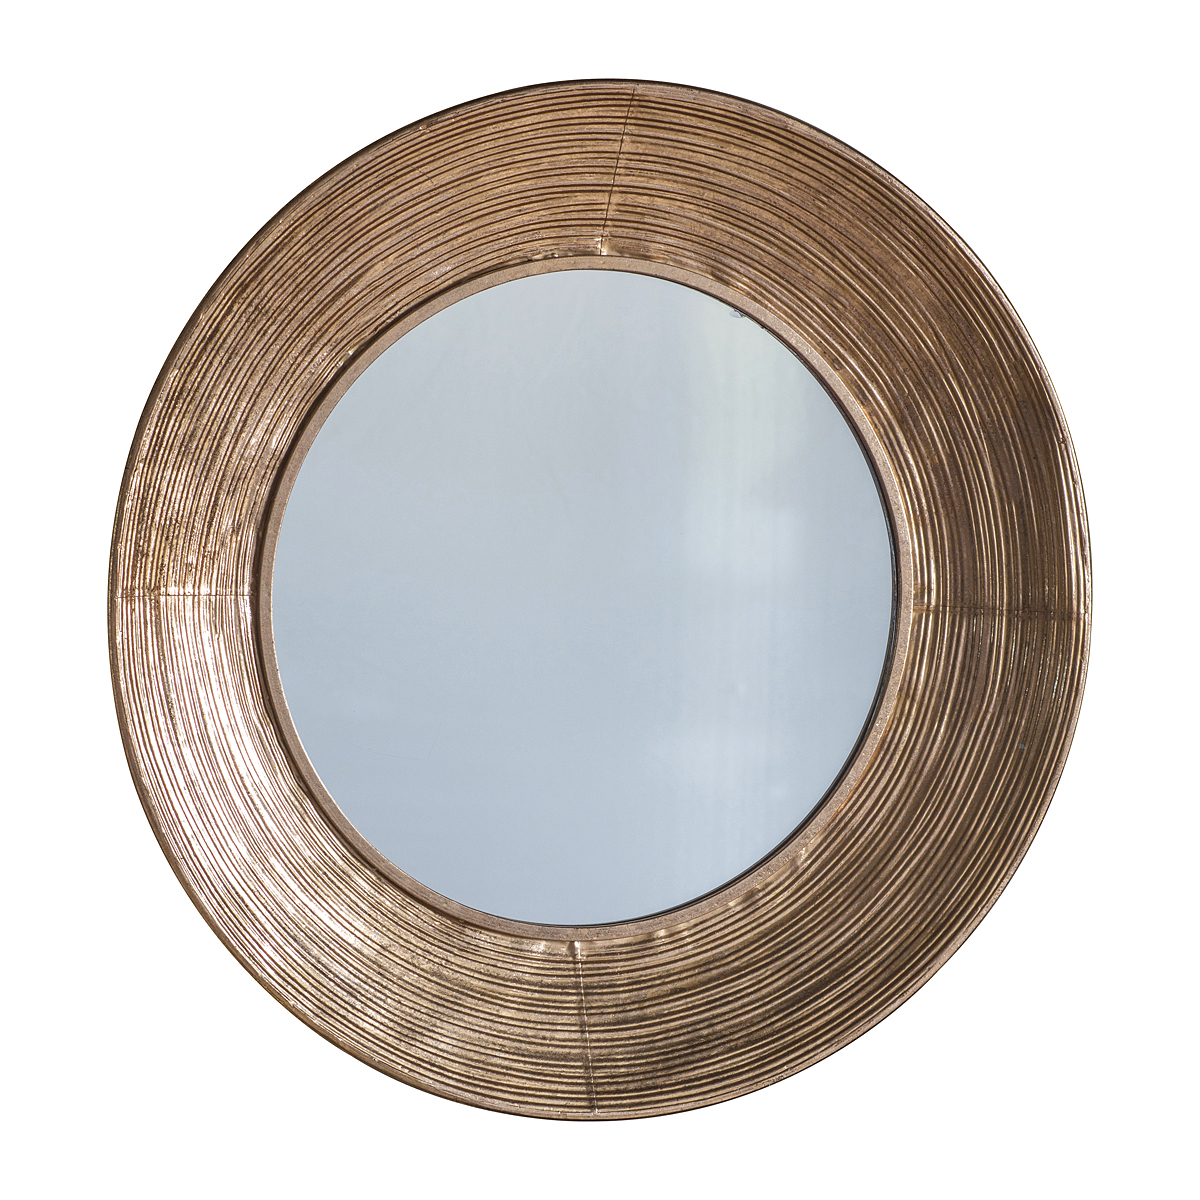 Well Known Copper Wall Mirrors Inside Round Copper Wall Mirror (View 18 of 20)